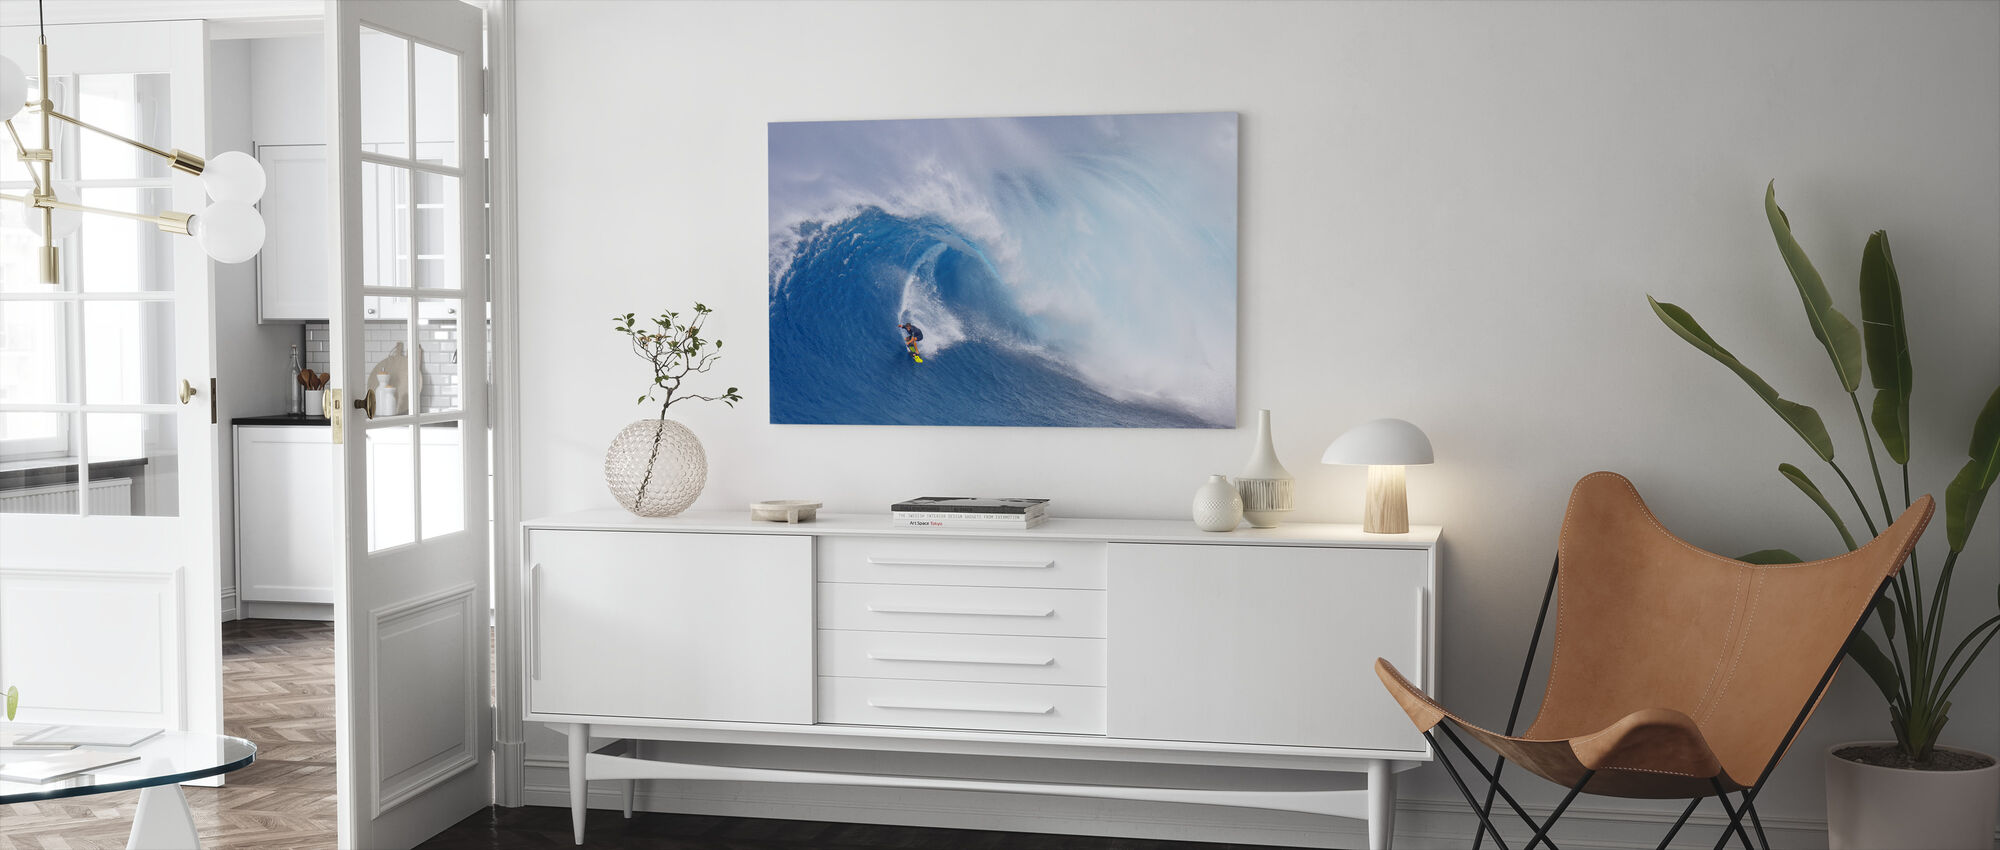 Surfing Jaws - Canvas print - Living Room